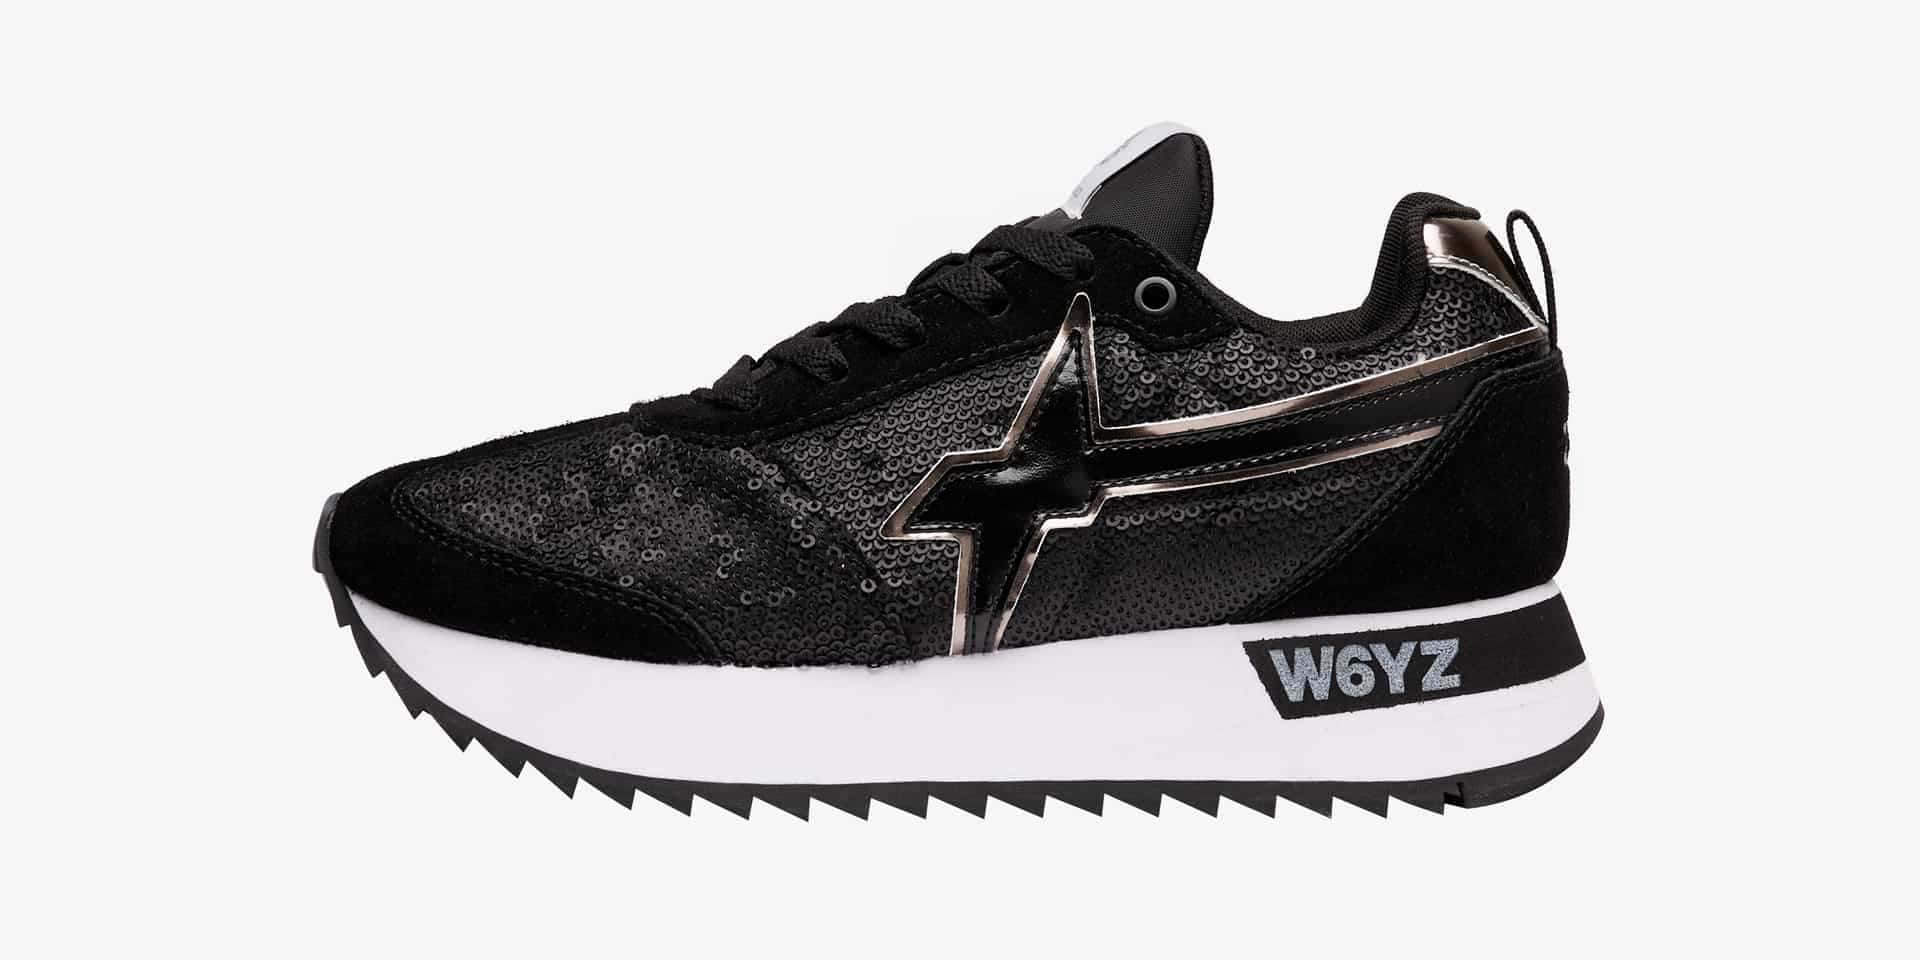 KIS-W. - Suede and sequin sneakers - Black